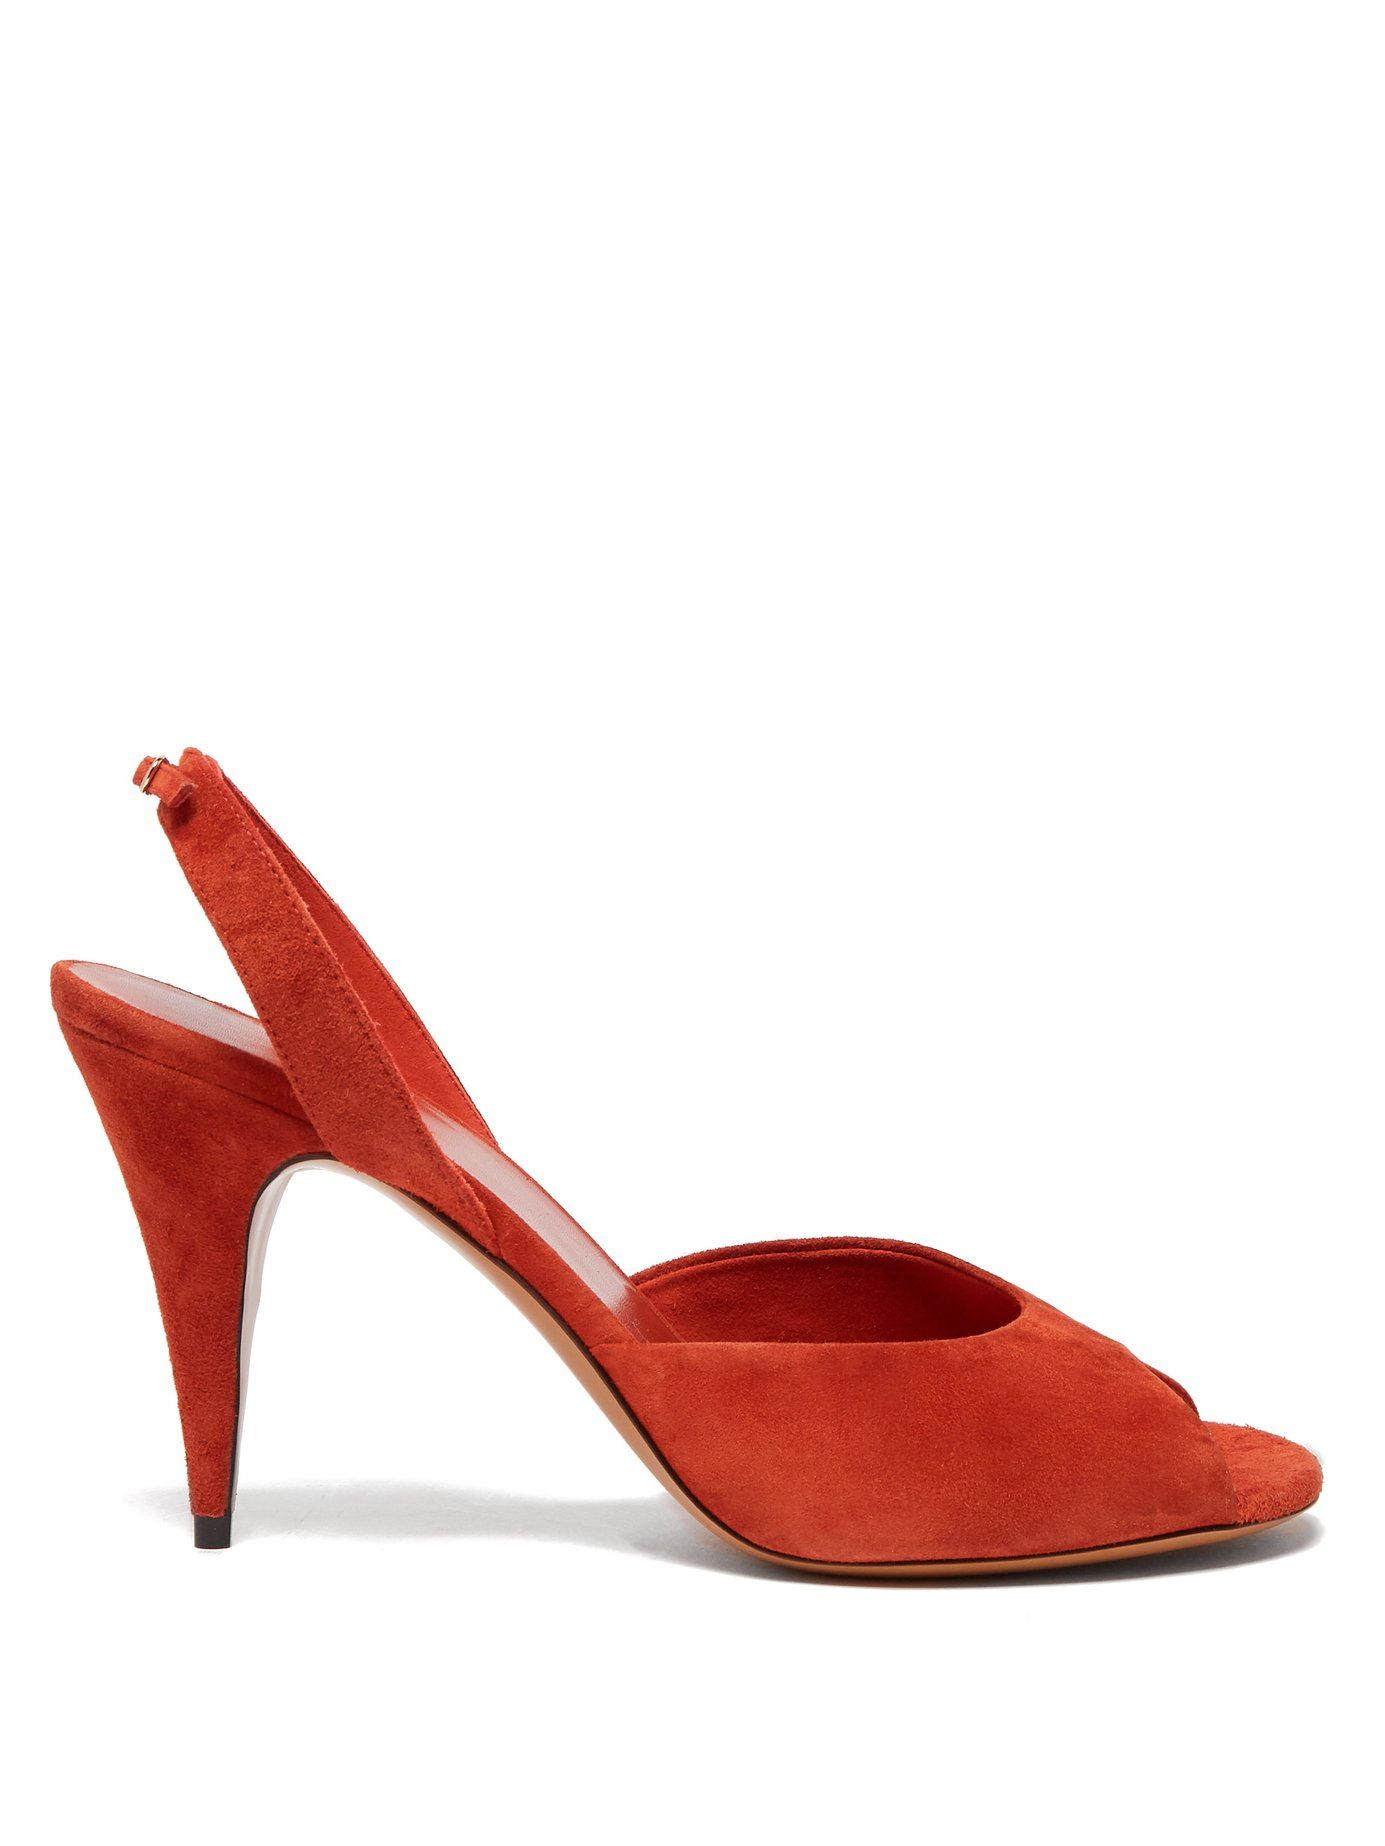 5ca6c3297a7 THE ROW Swing suede slingback sandals £725